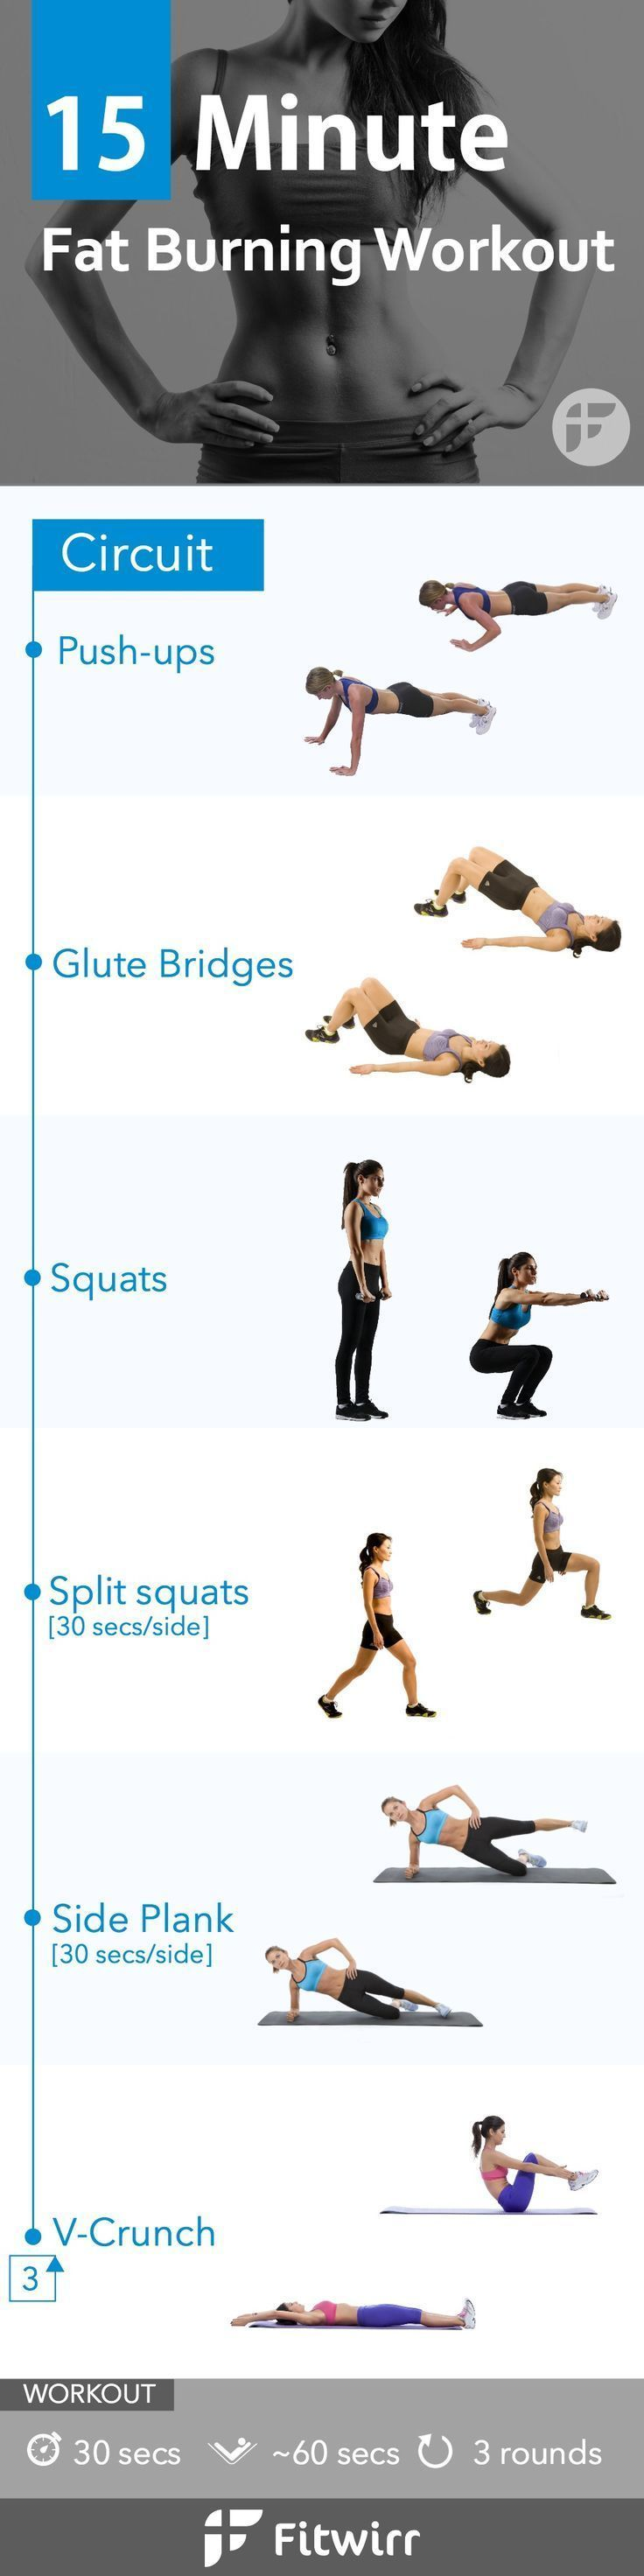 Need a quick workout you can do at home or in your hotel room? Here is a perfect workout for you. Hit it hard for 15 minutes to turn on your fat-burning hormone and get your body burning fat for up to 2 days. Sweat your way to your best body! #fitness